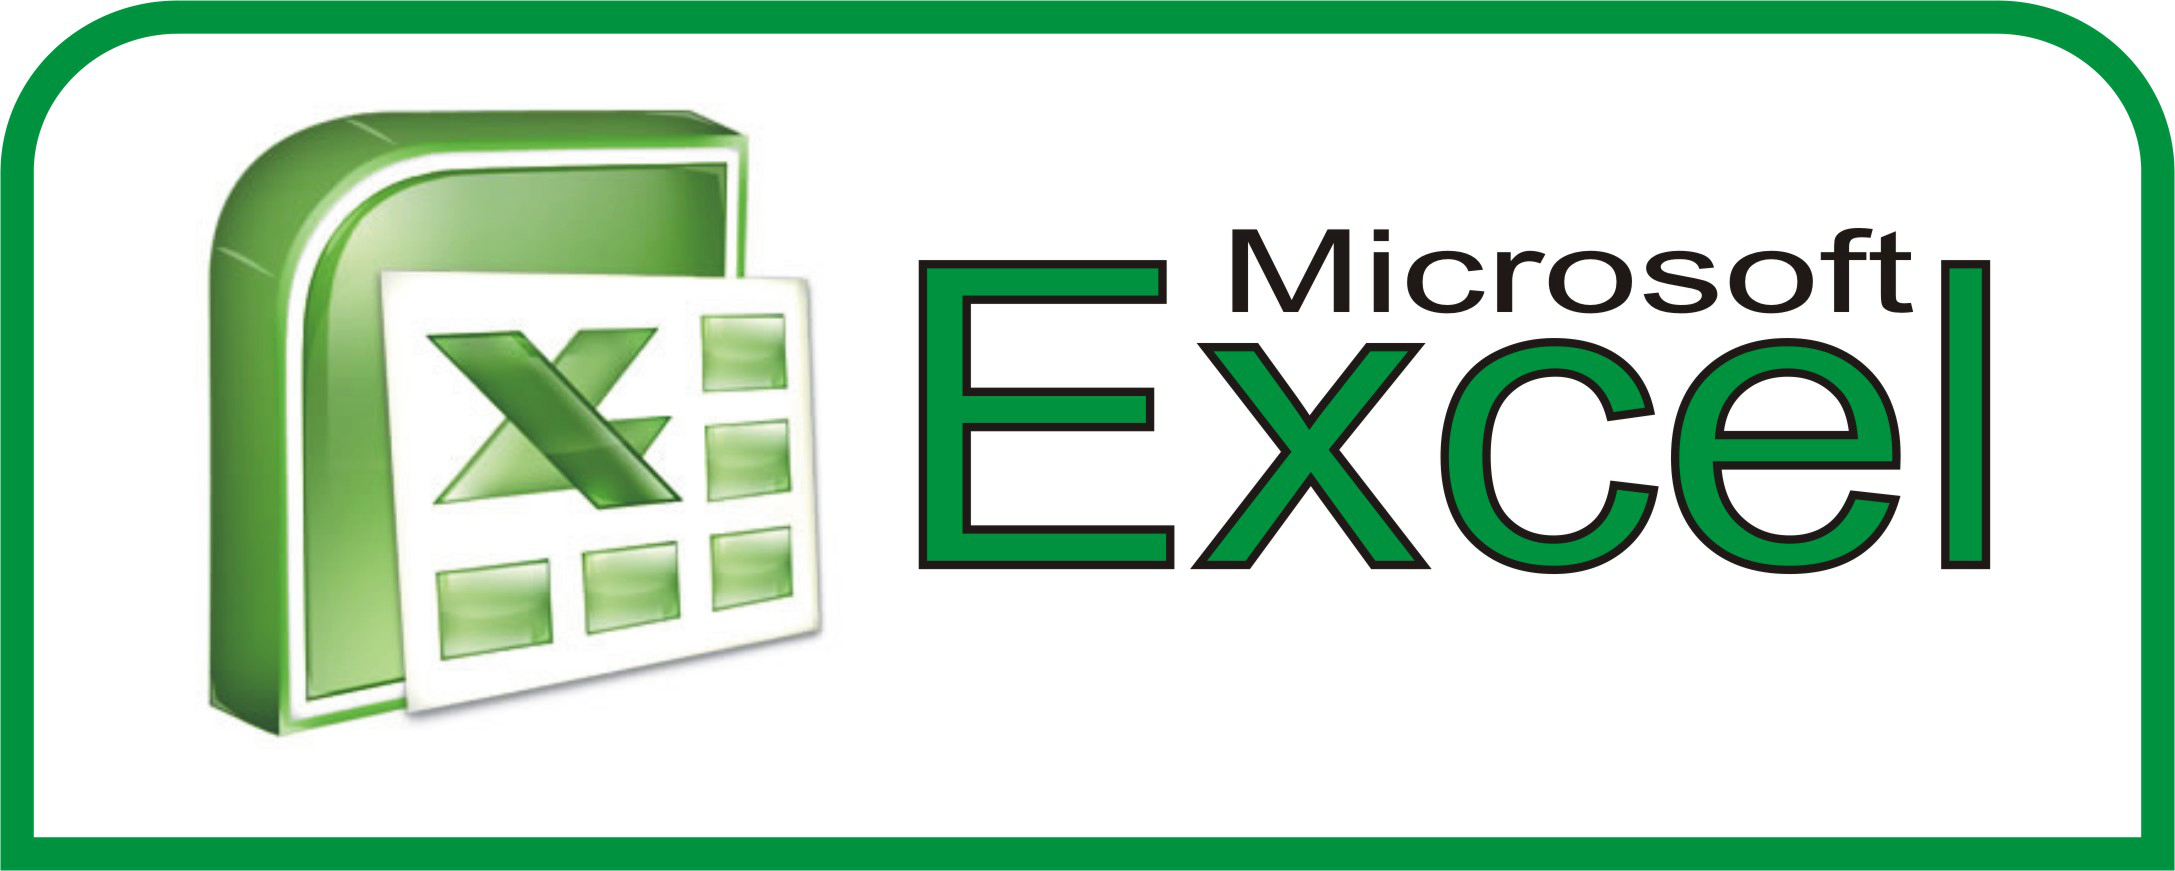 Ediblewildsus  Personable  Excel Shortcuts You Probably Didnt Know About  Techdissected With Luxury Shortcut For Format Painter In Excel Besides Excel Row Into Column Furthermore What Is A Macro On Excel With Endearing Advanced Excel Courses Online Free Also Household Budget Worksheet Excel Template In Addition Excel Absolute References And Excel Function Trim As Well As How Do I Square A Number In Excel Additionally Excel Speedometer Dashboard From Techdissectedcom With Ediblewildsus  Luxury  Excel Shortcuts You Probably Didnt Know About  Techdissected With Endearing Shortcut For Format Painter In Excel Besides Excel Row Into Column Furthermore What Is A Macro On Excel And Personable Advanced Excel Courses Online Free Also Household Budget Worksheet Excel Template In Addition Excel Absolute References From Techdissectedcom